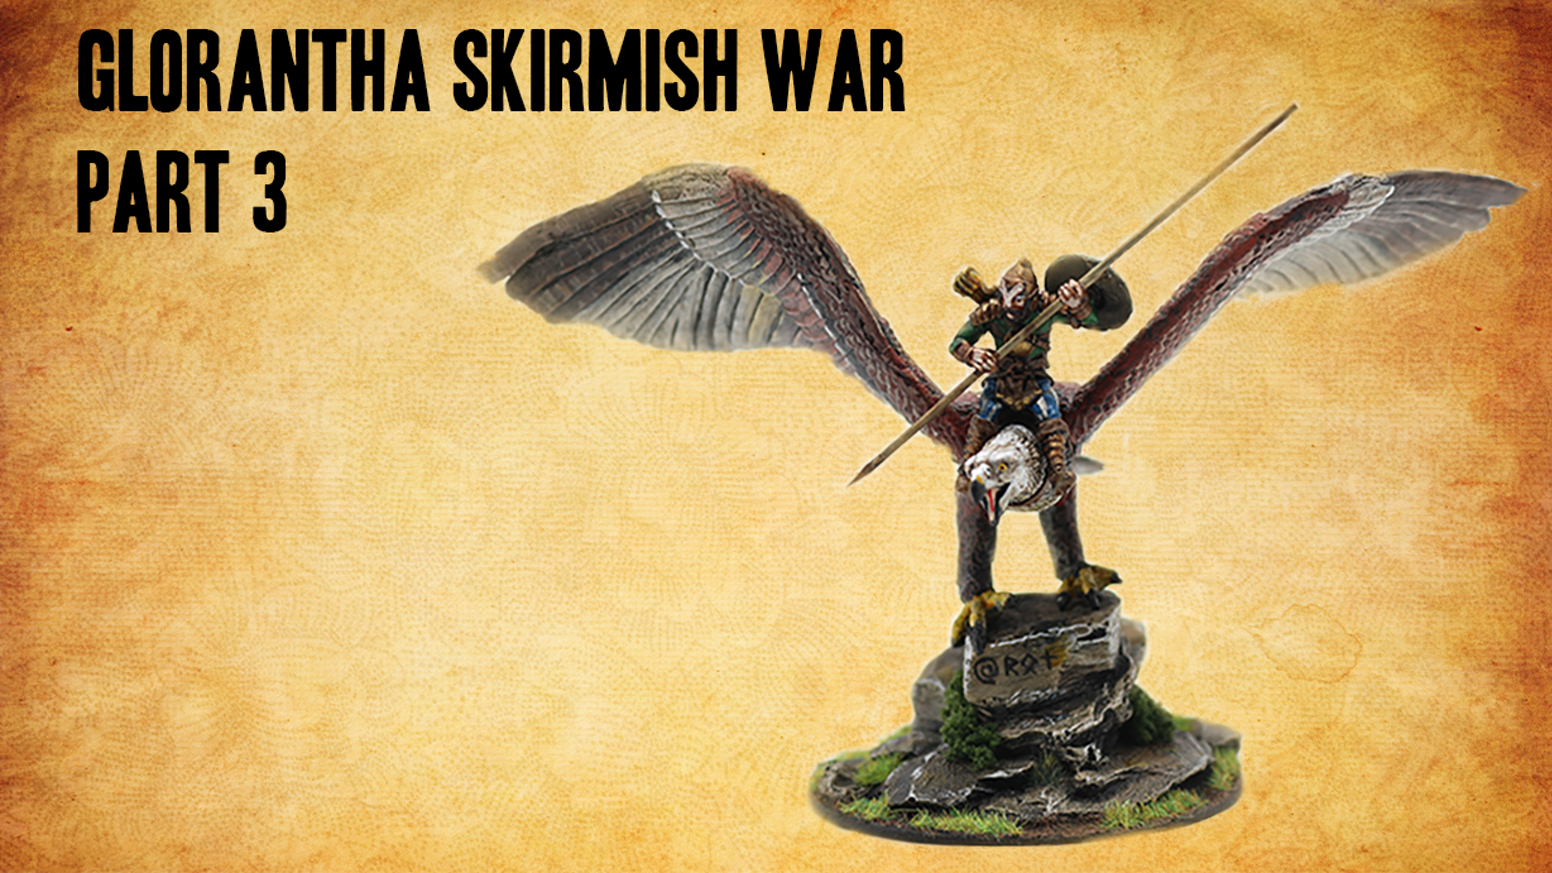 28 mm Licenced Glorantha Miniatures, Axe Sisters, Lasdag Lions and Balazar Big Bird